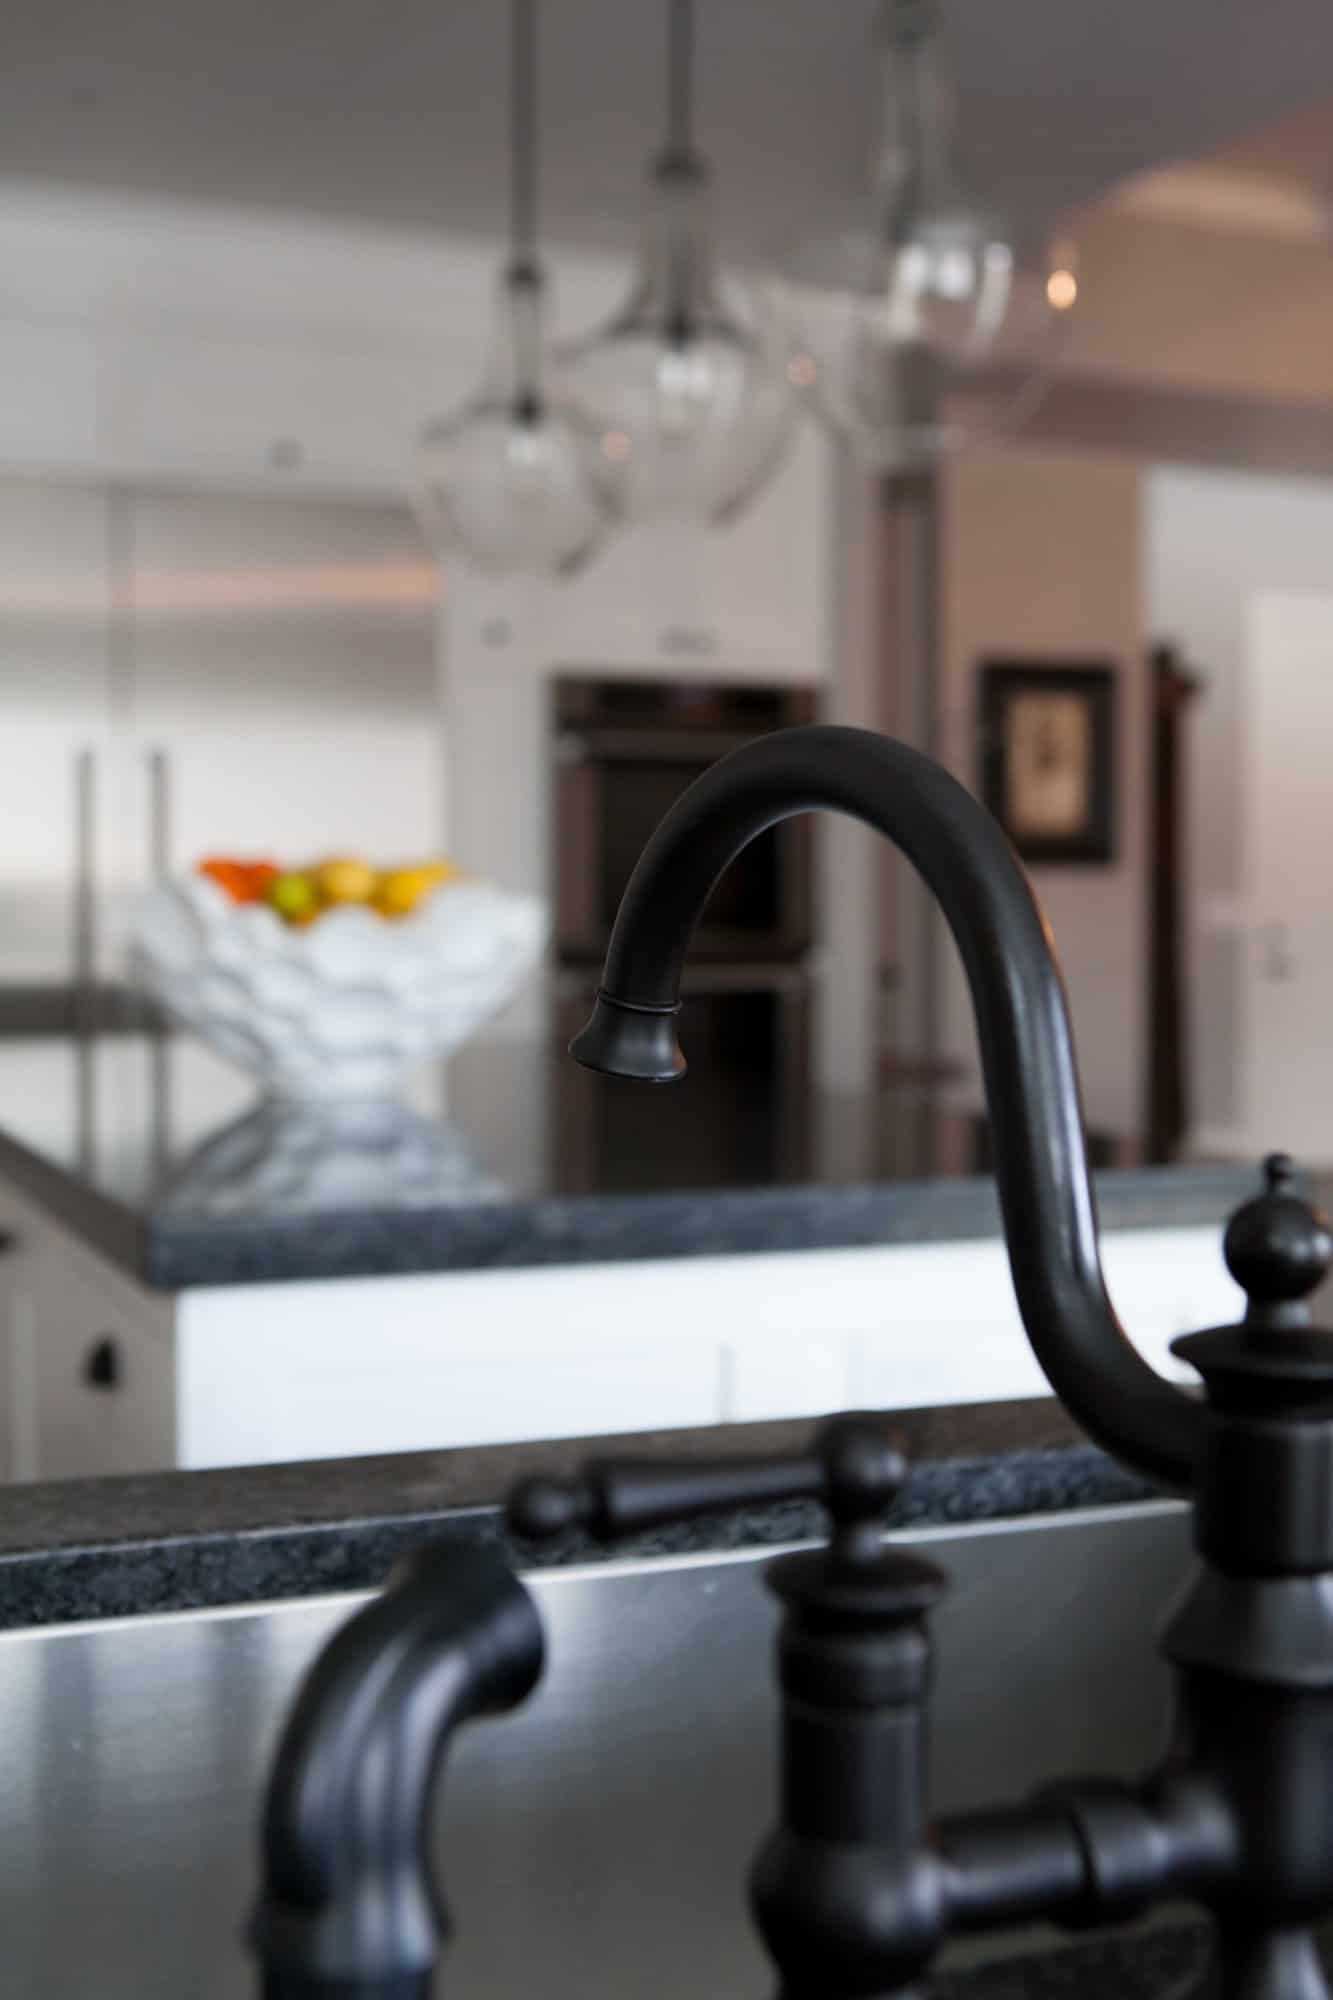 Choosing lighting, cabinet knobs and faucets for the kitchen can be a lot of stress! Come check out these great tips and tricks to creating the perfect white kitchen! Find the article at overthebigmoon.com!